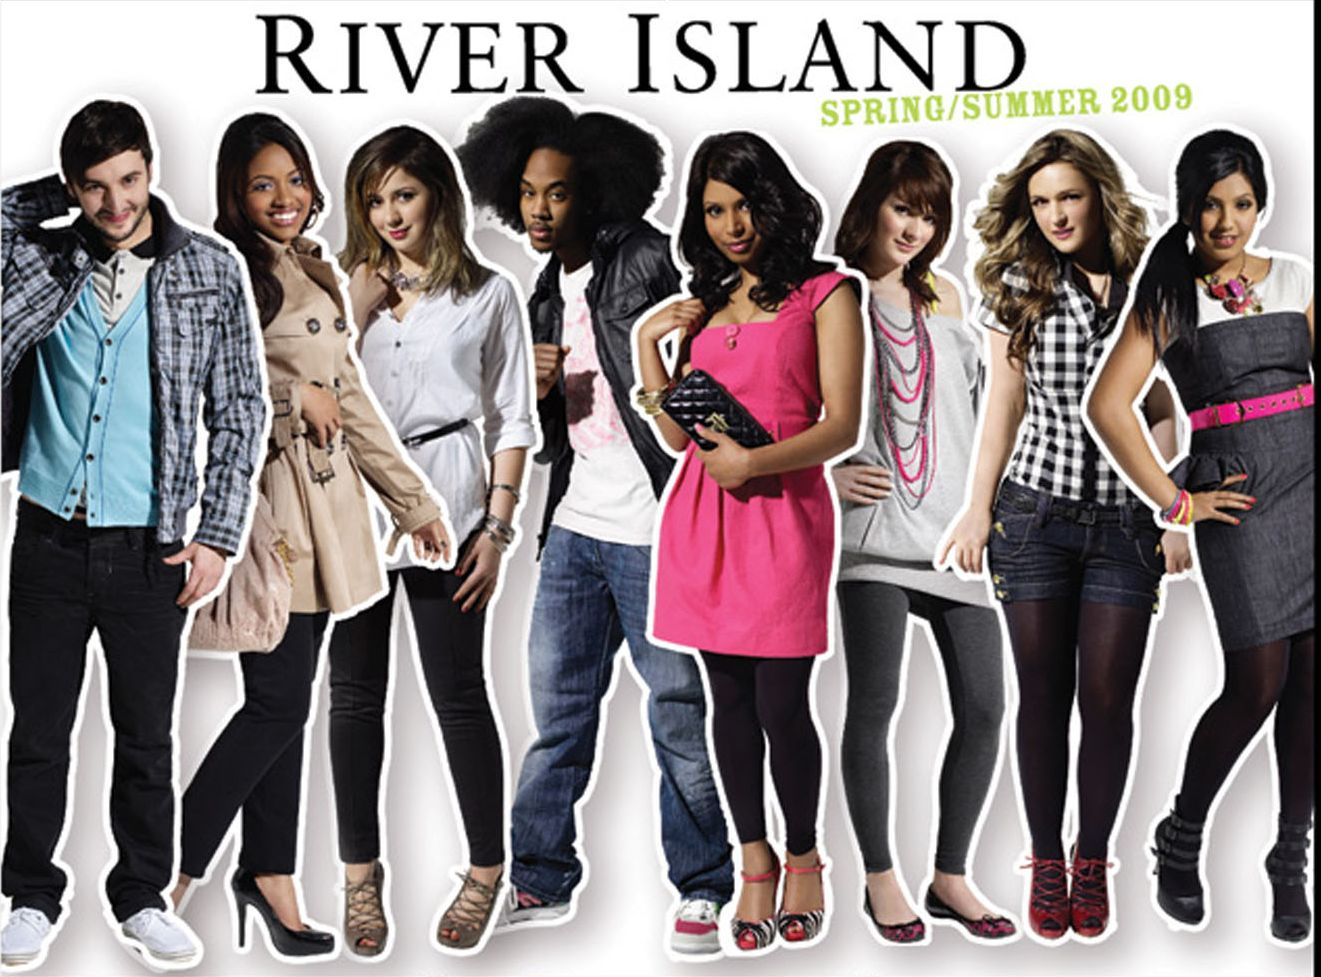 The island clothing store